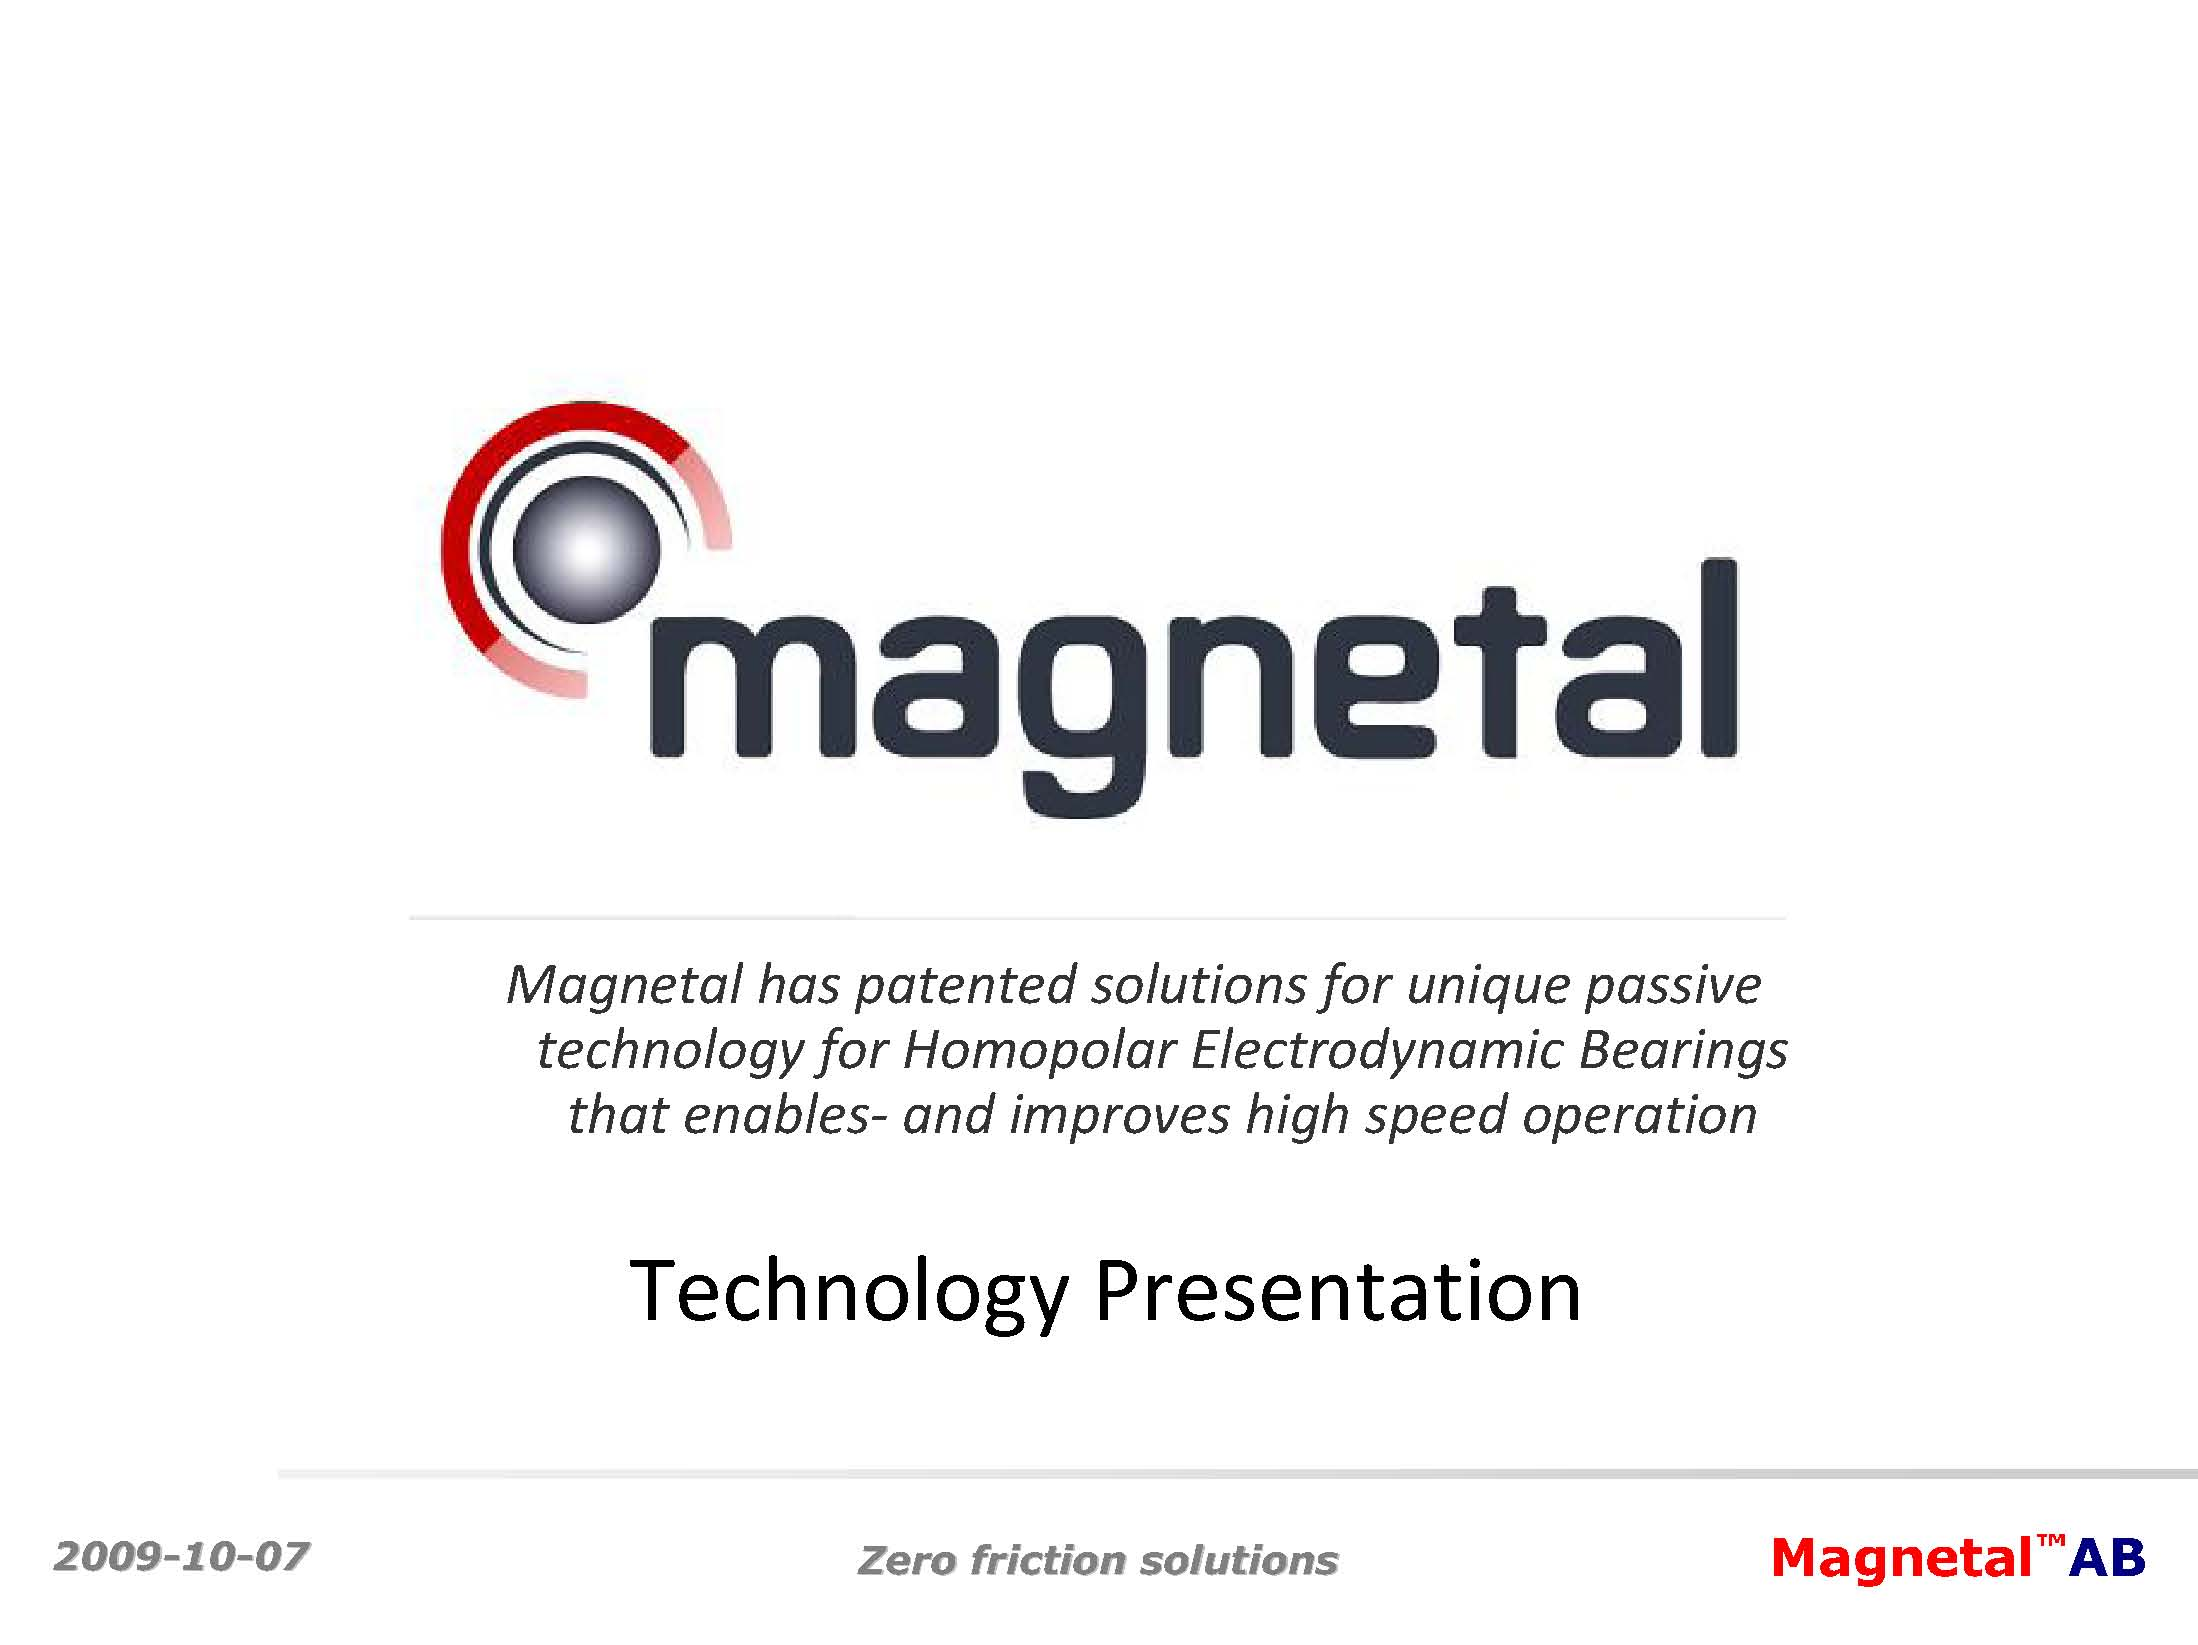 Magnetal Technology Presentation